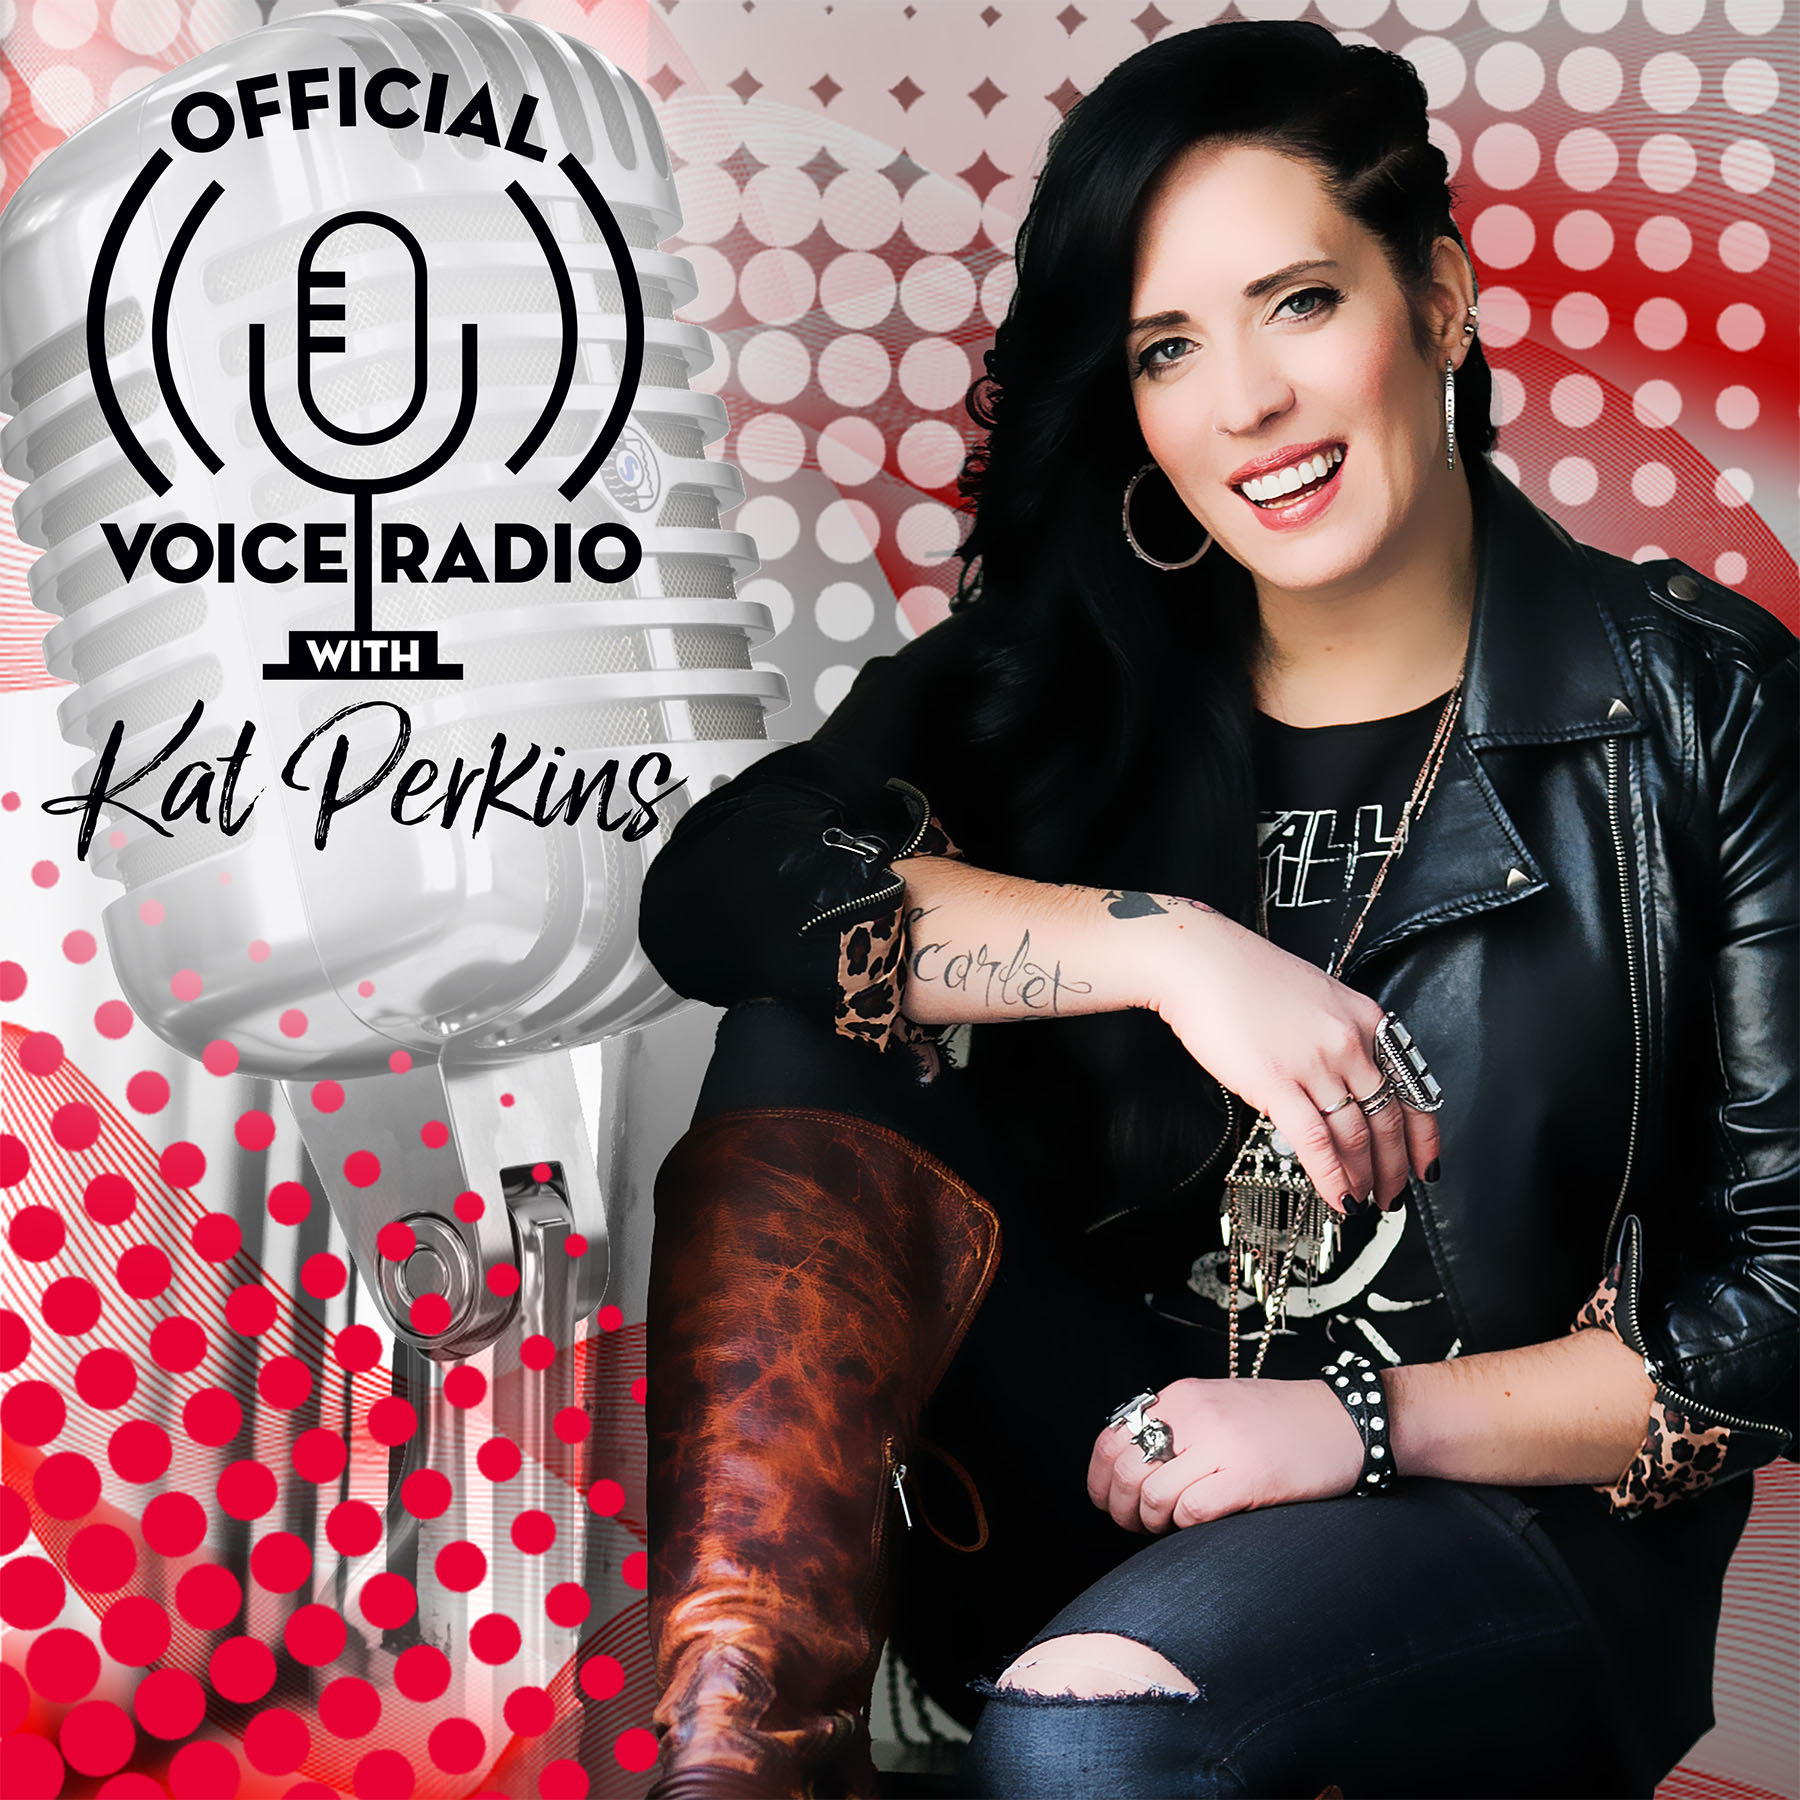 Official Voice Radio Podcast